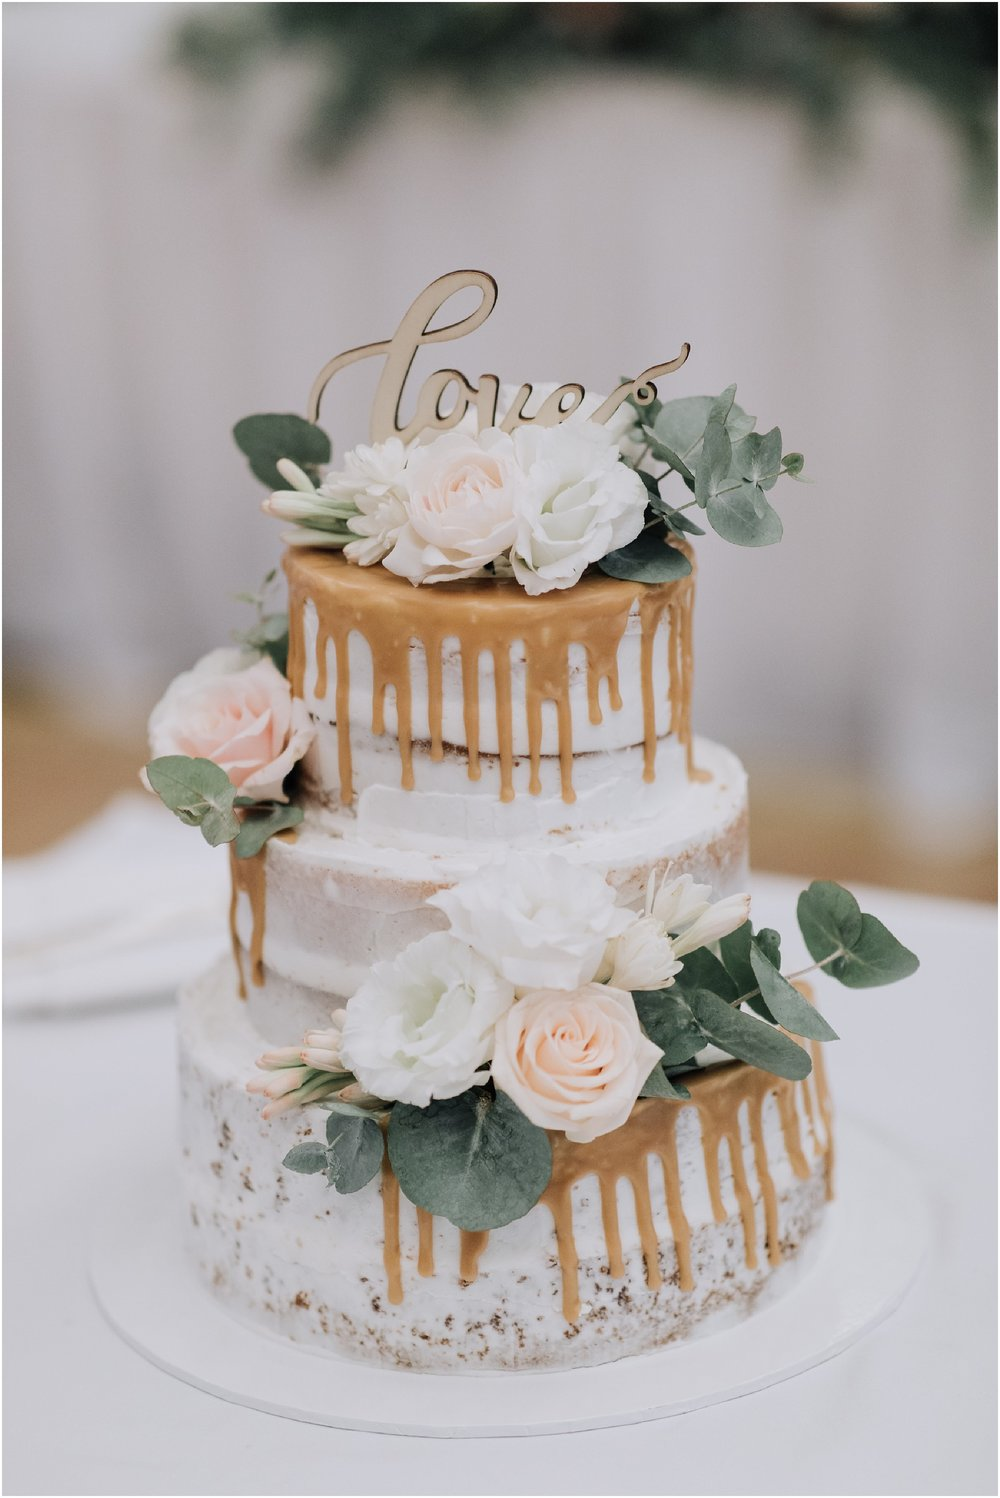 Sydney Wedding Cake Design